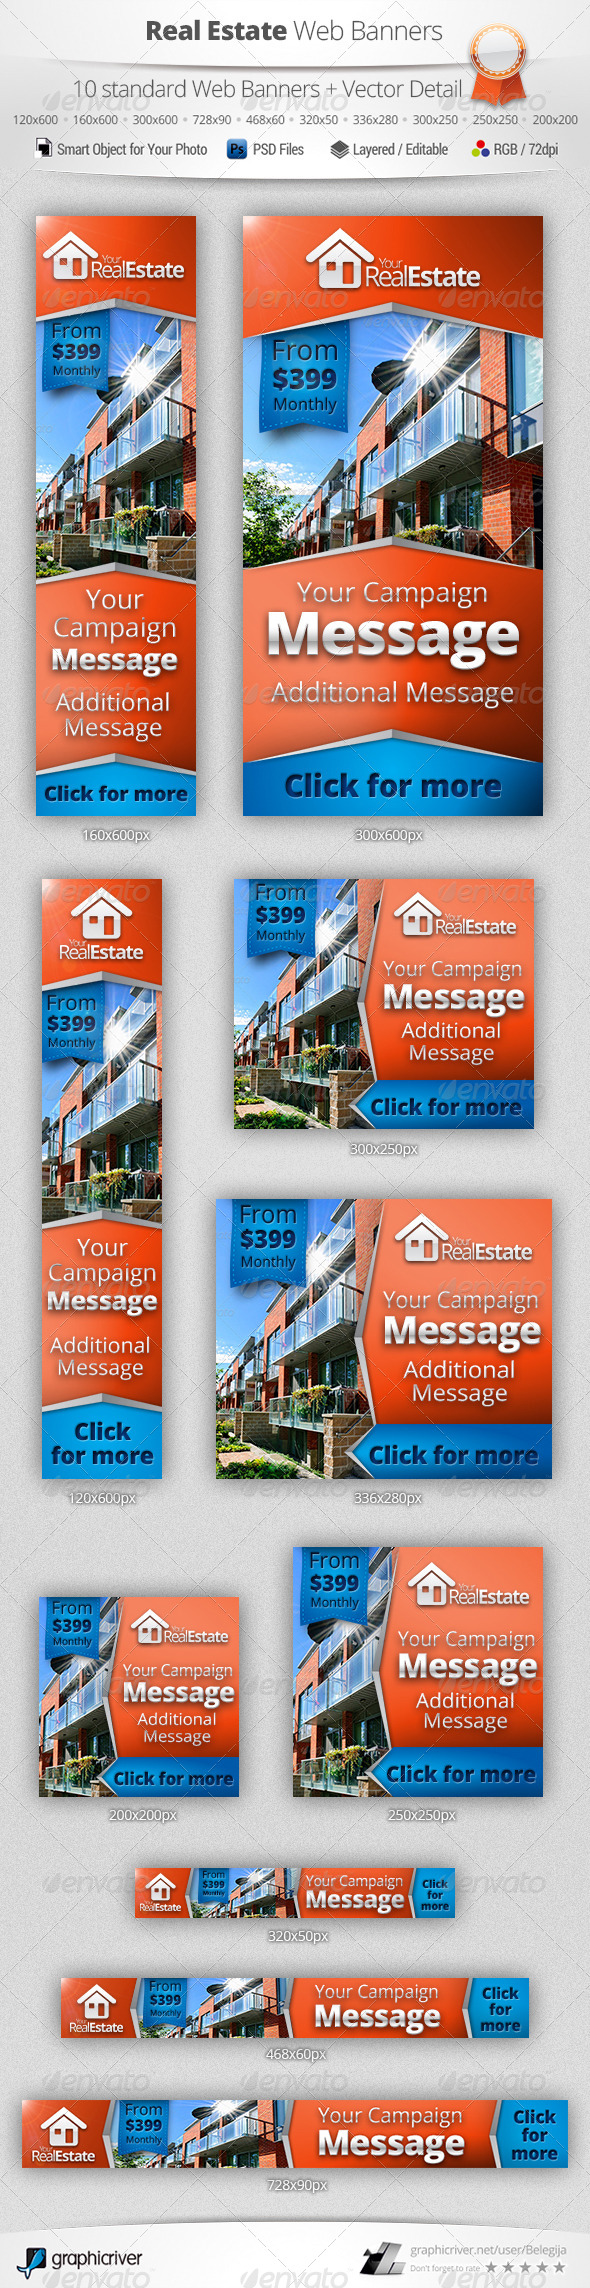 Real Estate Campaign Web Banners 2 | Web banners, Banner template ...